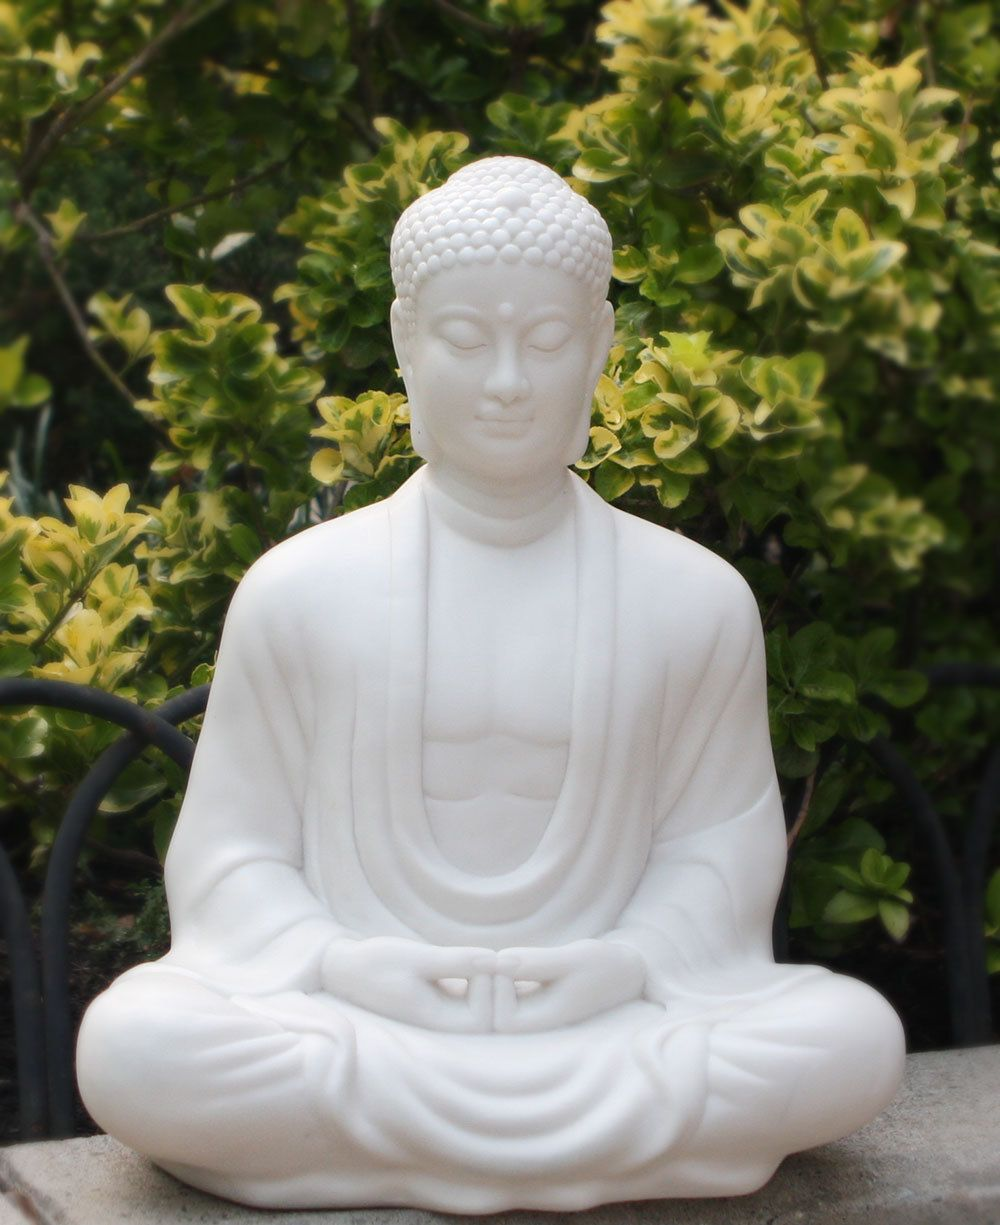 Buddha Statues For The Garden: Sitting Garden Buddha Statue In Pearl White, 21 Inches